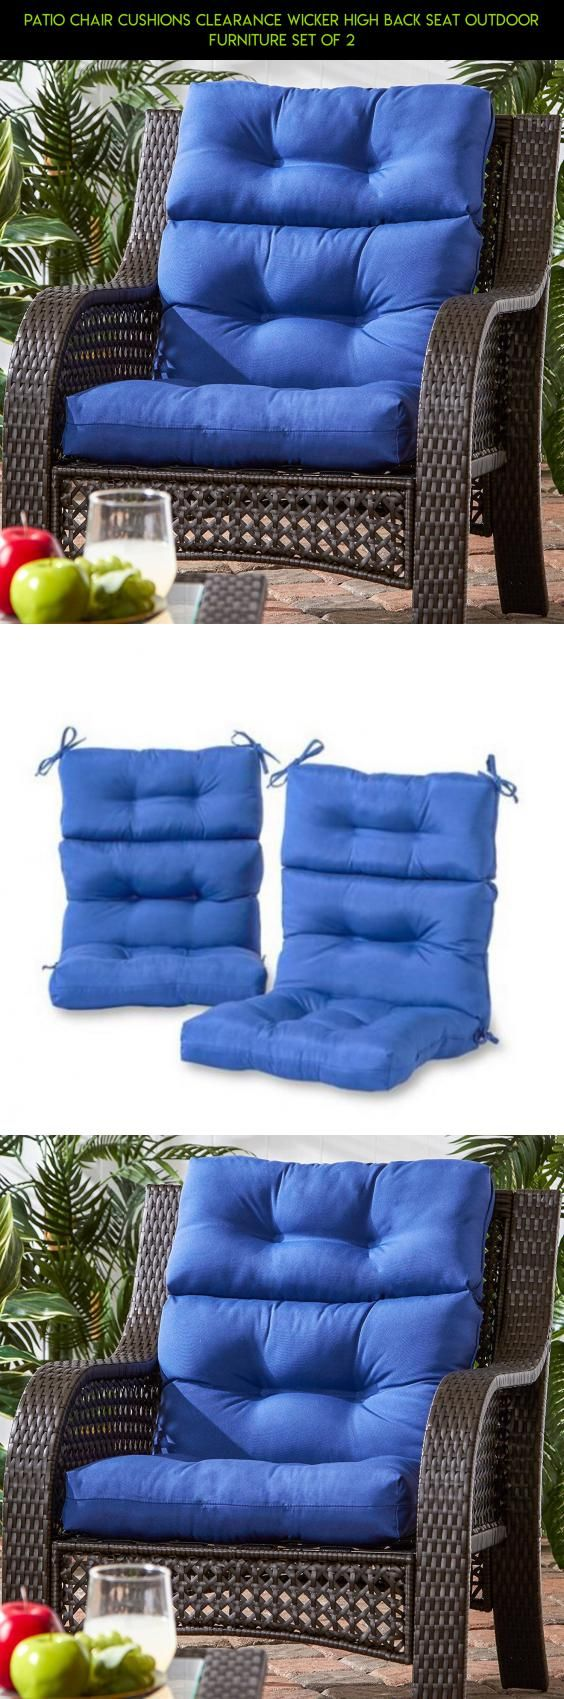 Patio Furniture Clearance Ontario Canada: Best 25+ Patio Chair Cushions Clearance Ideas On Pinterest